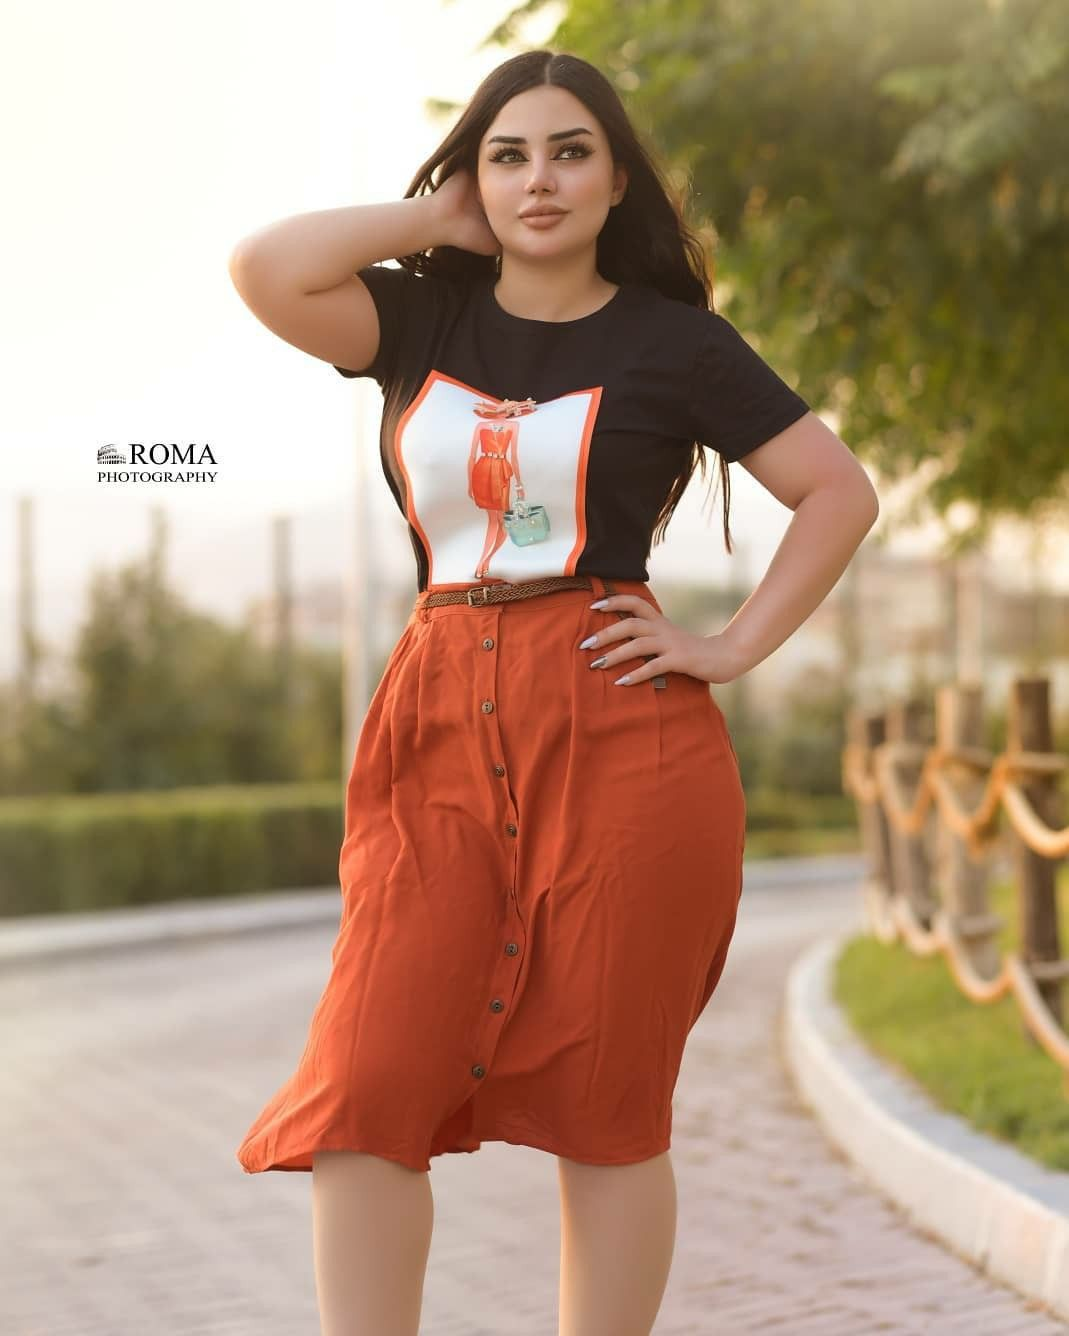 Pin By حلم العمر On Photography Poses Women In 2020 Photography Poses Women Cool Girl Pictures Cool Girl